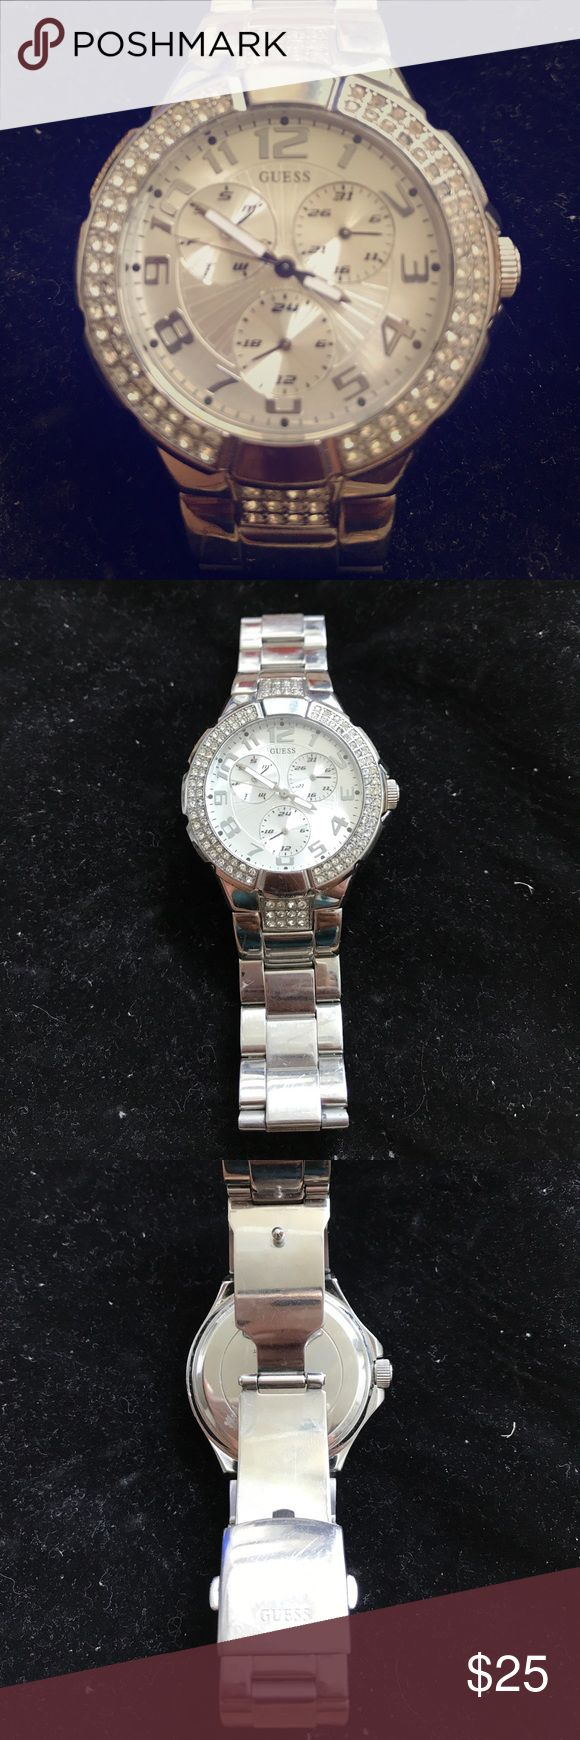 Guess Women's Watch This Watch is a statement piece for sure! Large face embellished with rhinestones. Three different faces embedded within the large face to show day of the month, military time and day of the week. Small scratches on the clasp but otherwise in great condition. Will need a Watch battery. Guess Accessories Watches